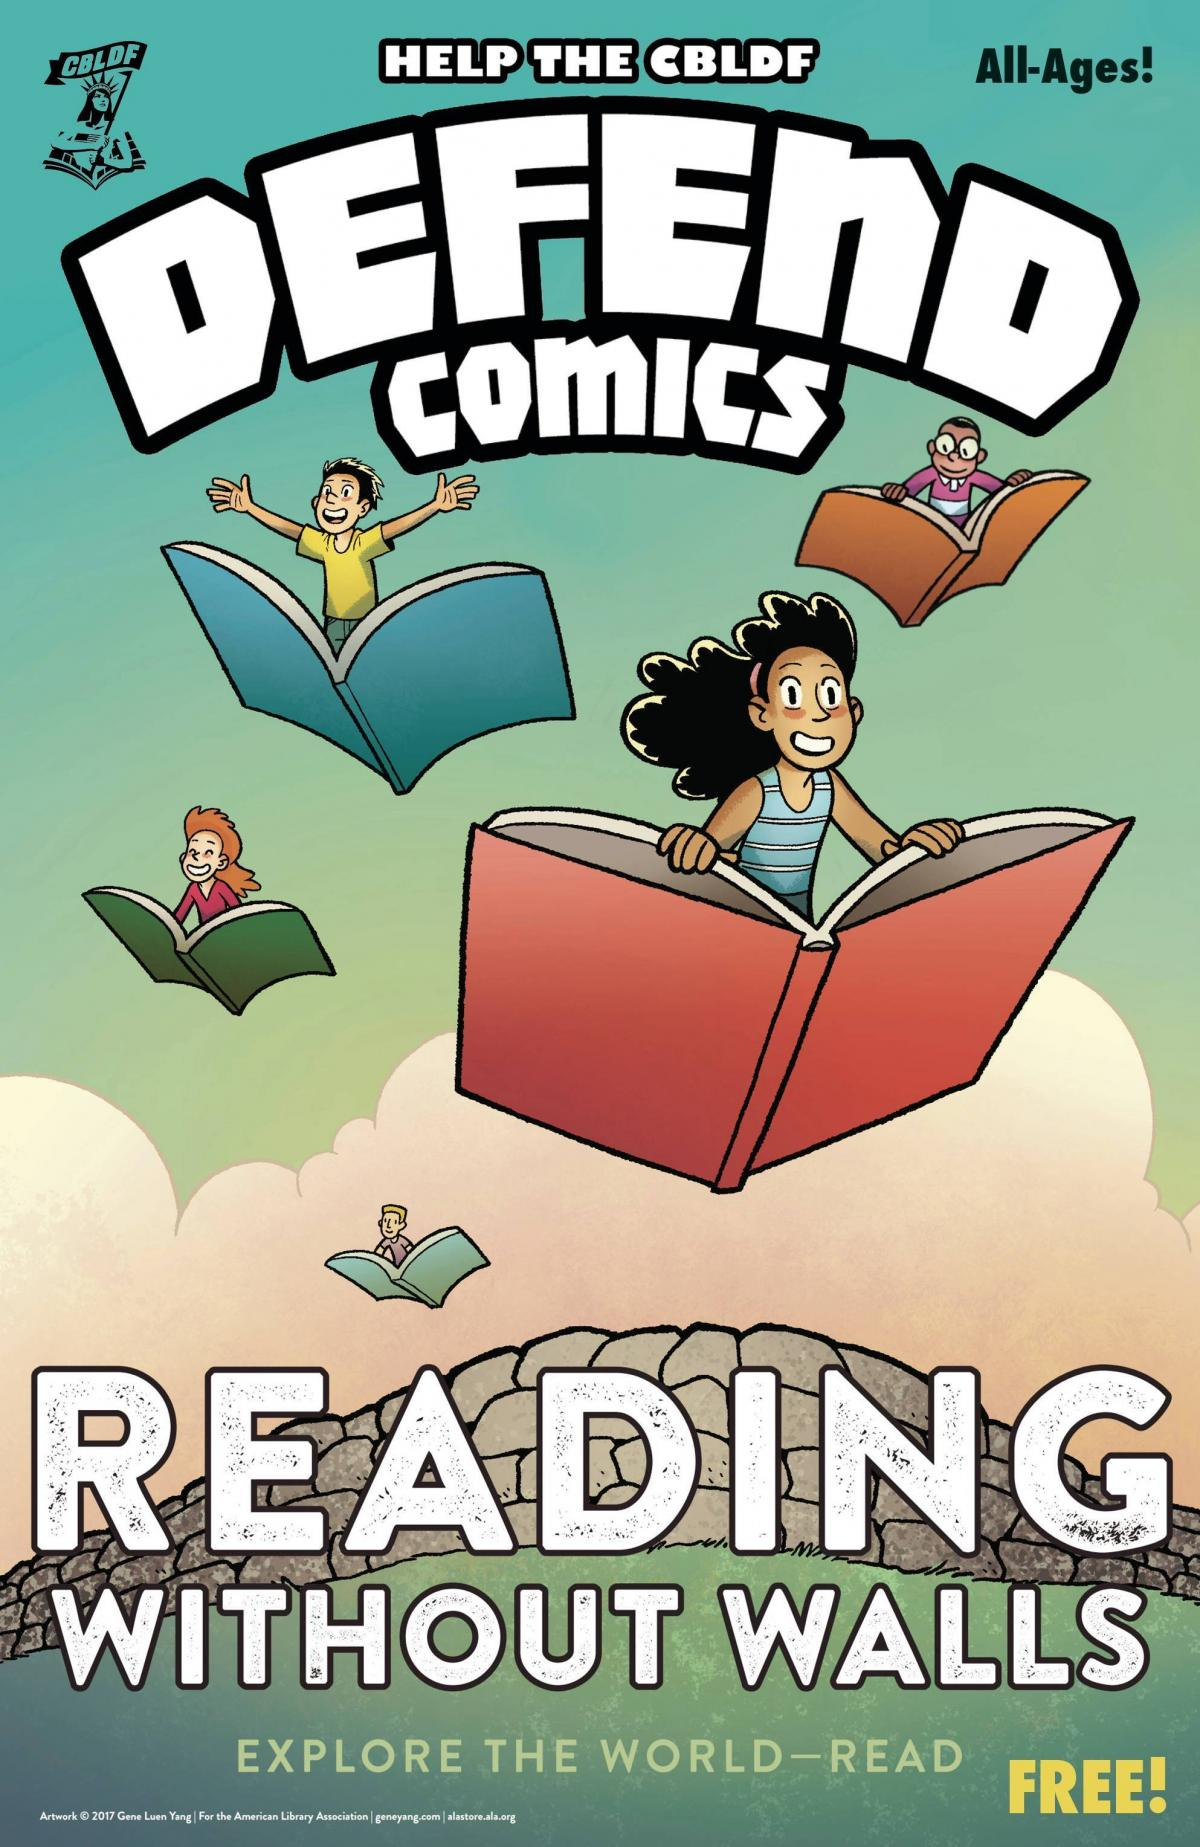 Free Comic Book Day 2018: A Guide To The Best Bets And The